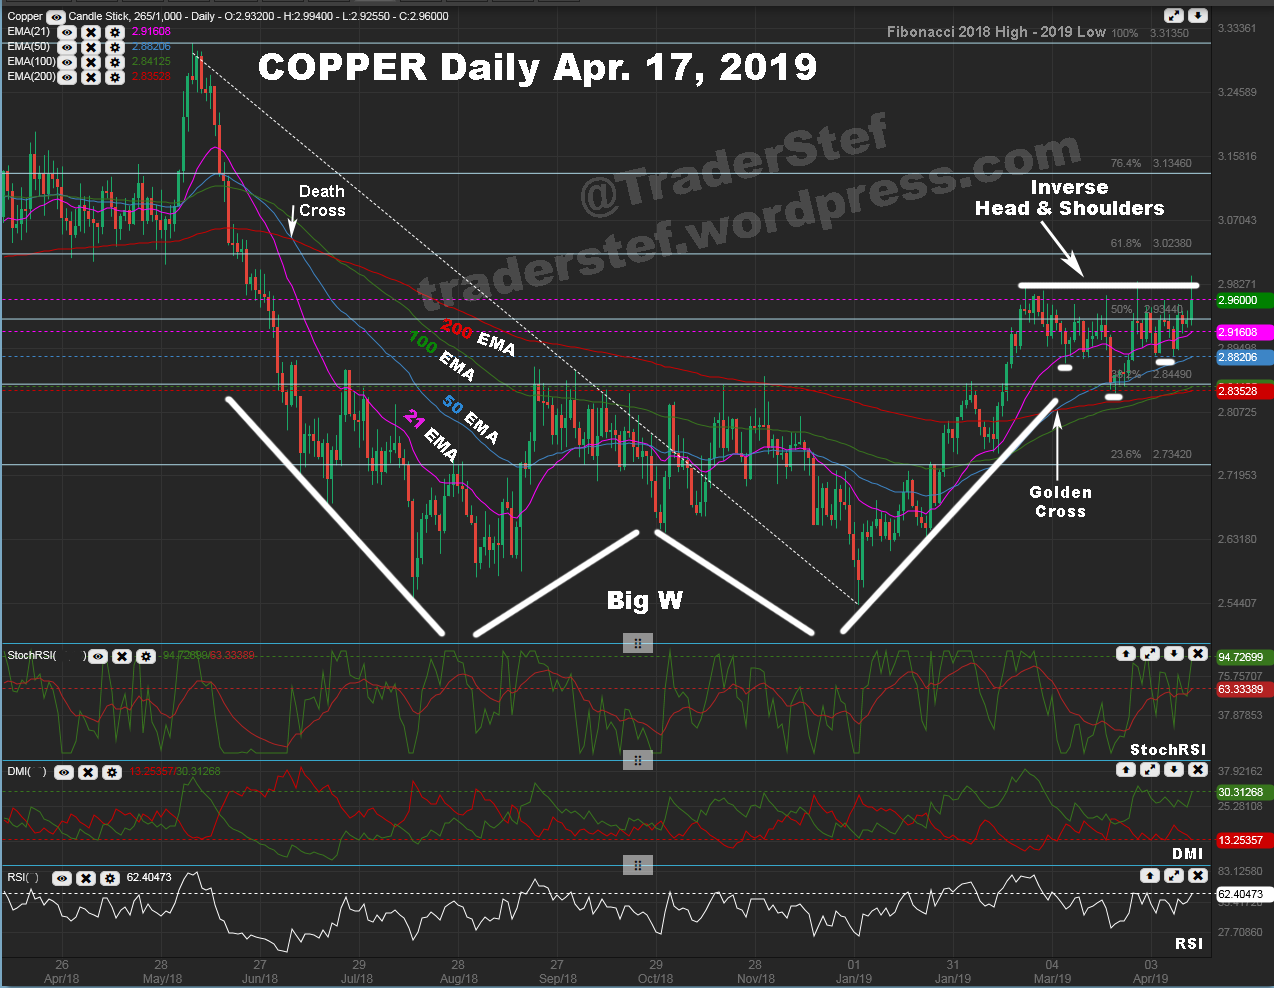 Copper Daily Futures Chart April 17, 2019